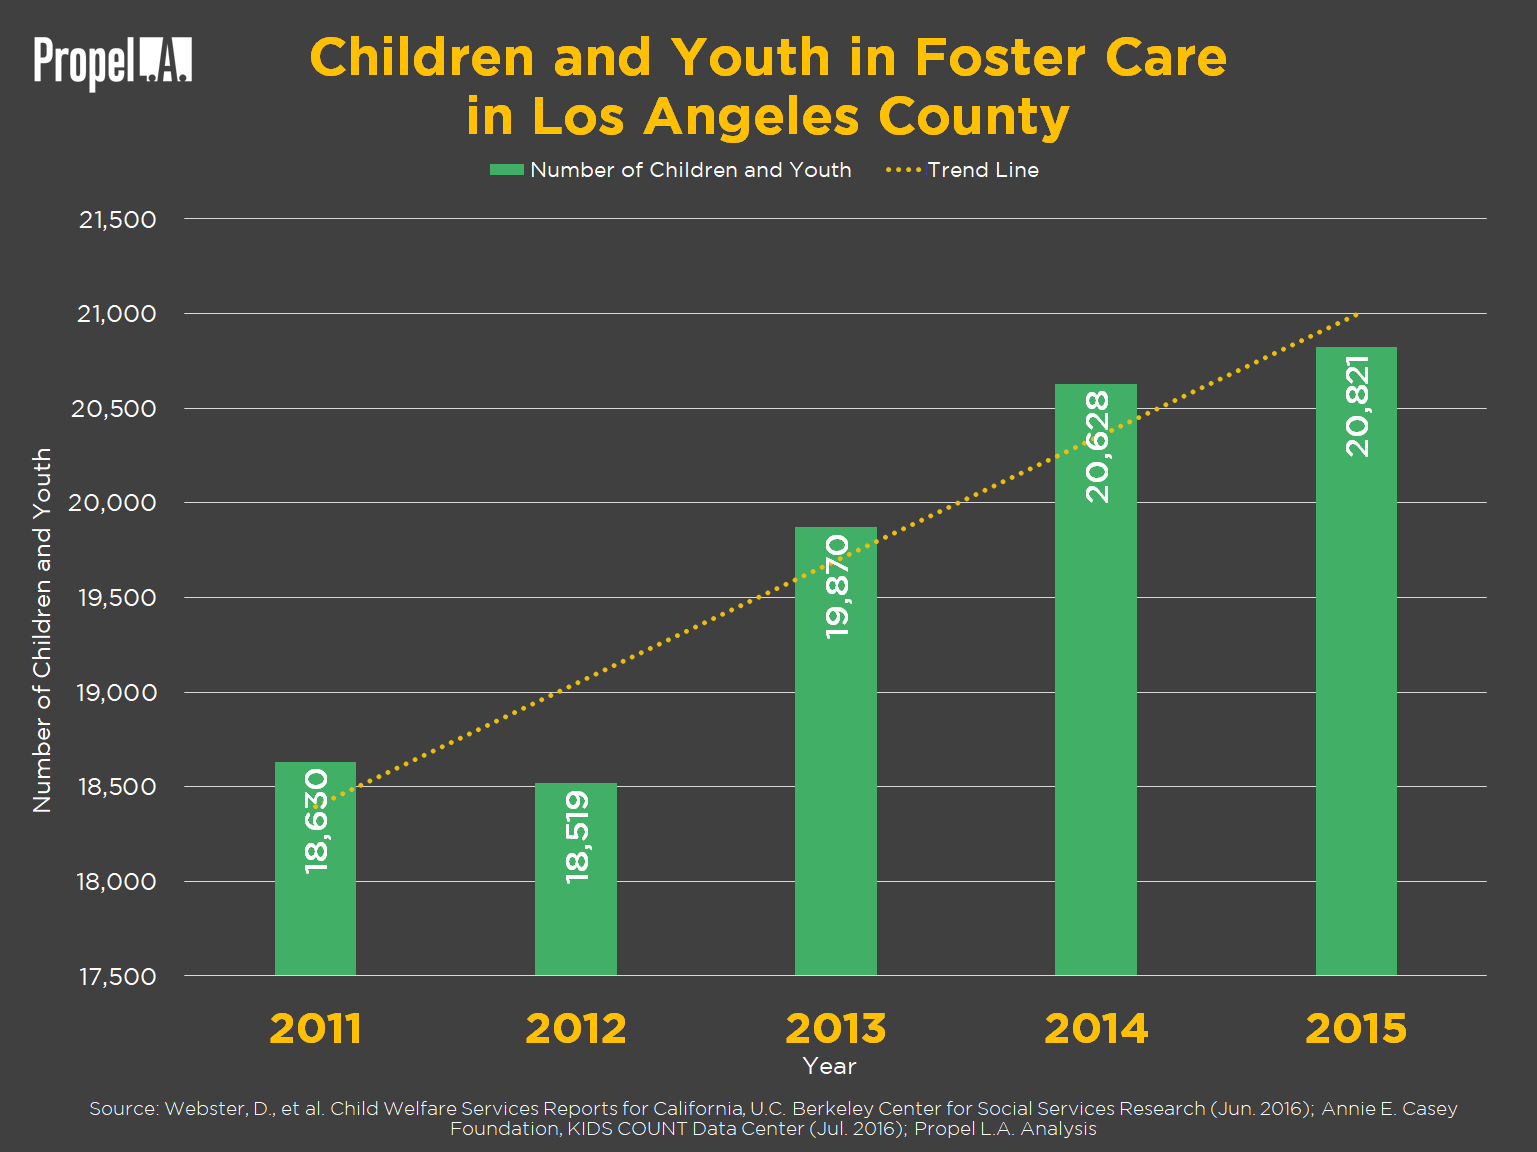 Foster Care in Los Angeles County